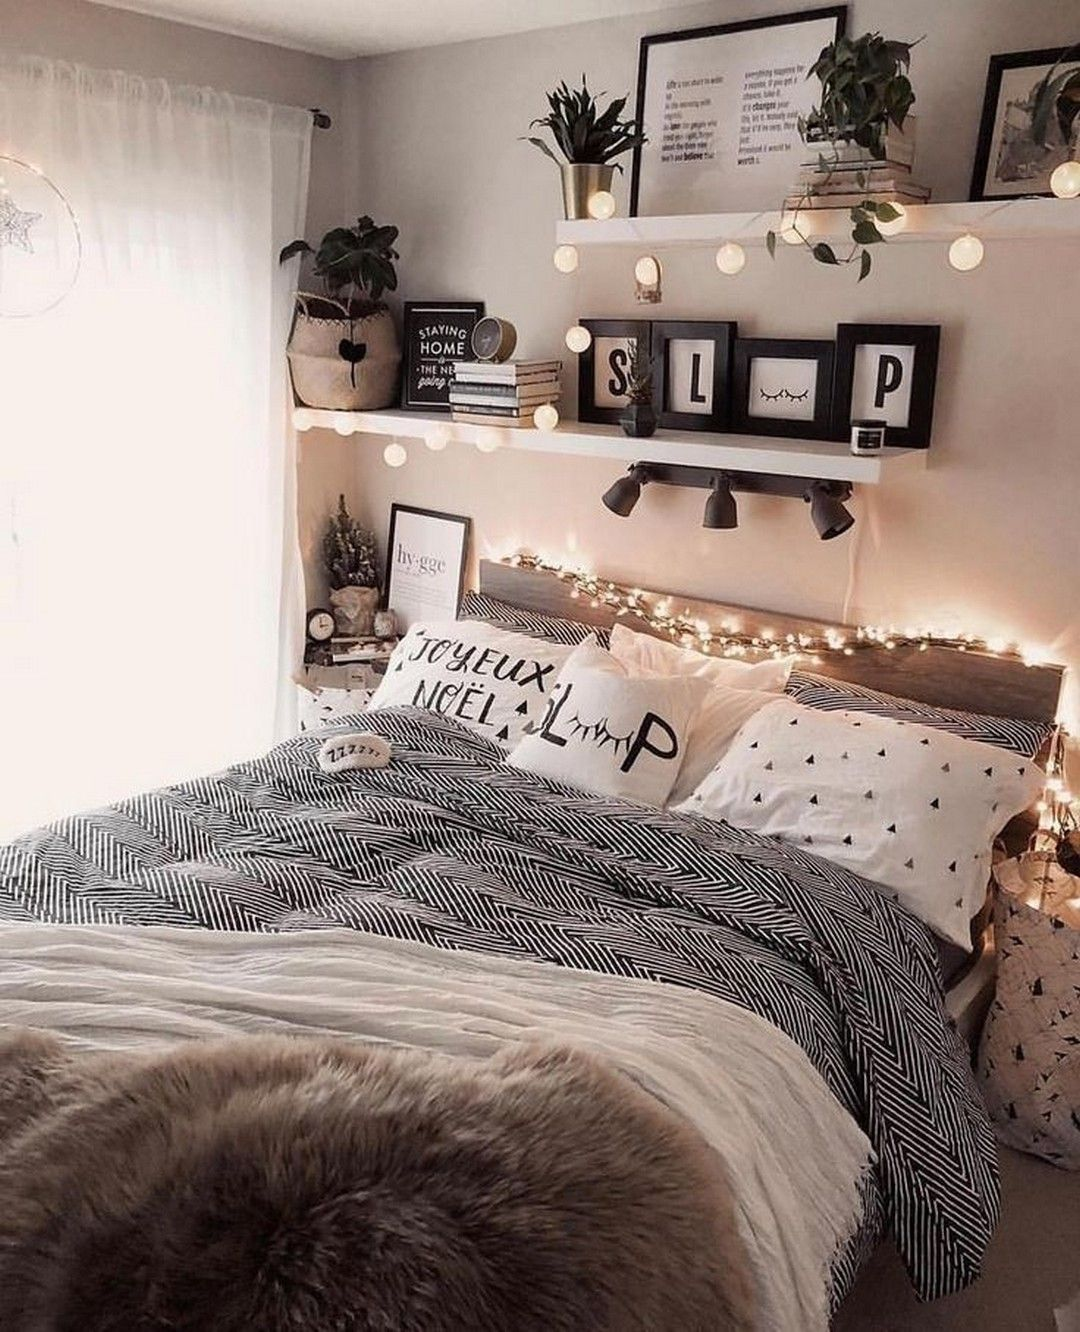 30 Teenage Girl Bedroom Ideas | Cute bedroom decor ...